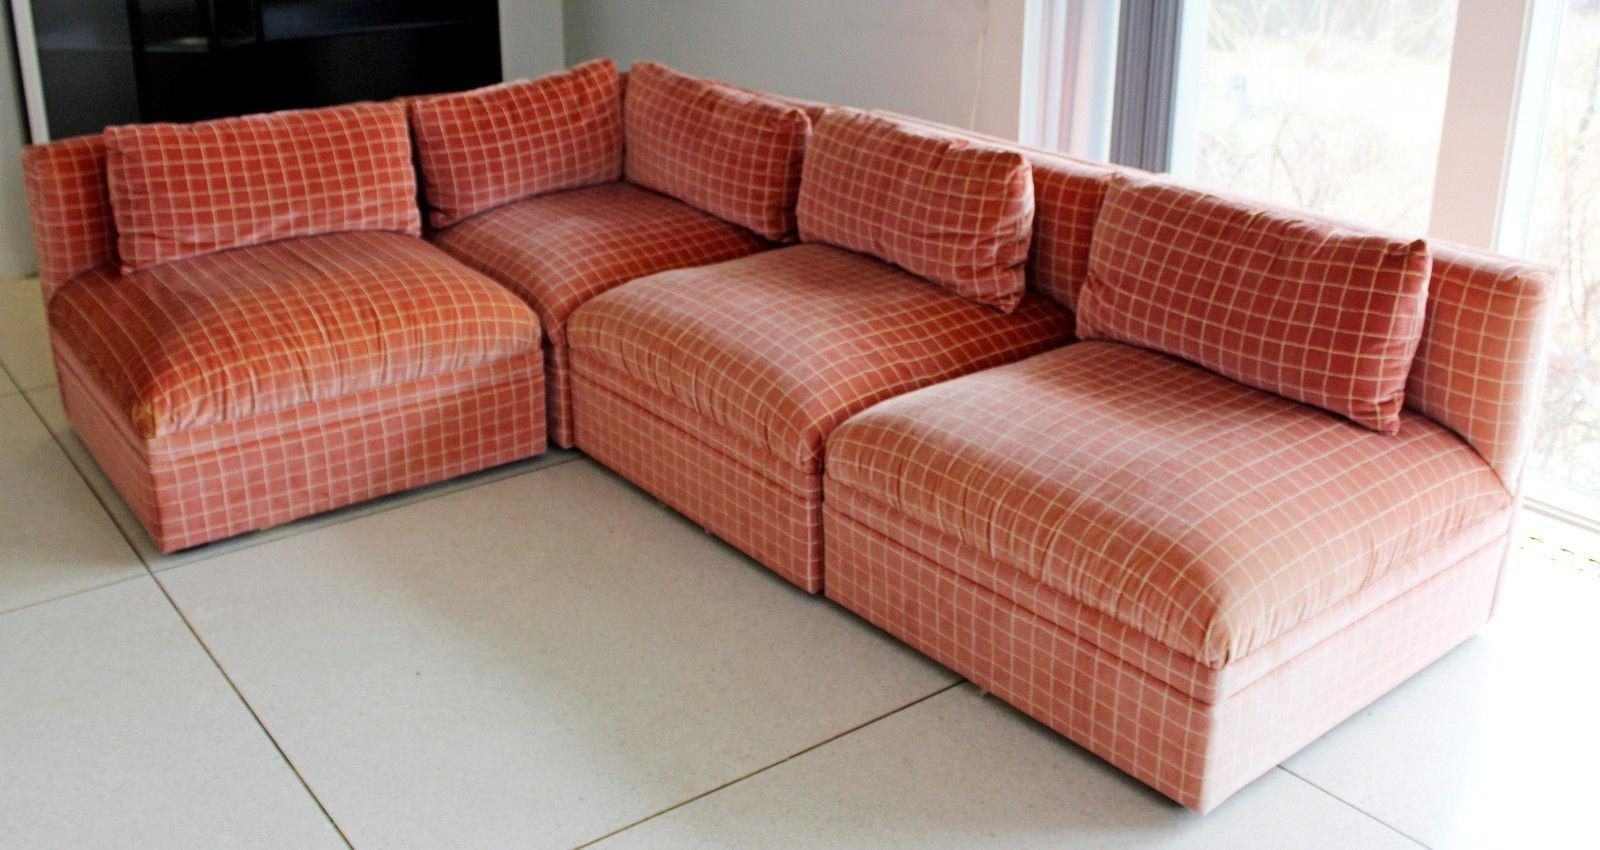 Superb Mid Century Modern Large Baughman Directional 9 Piece Sectional Sofa 1970s    Image 4 Of 11